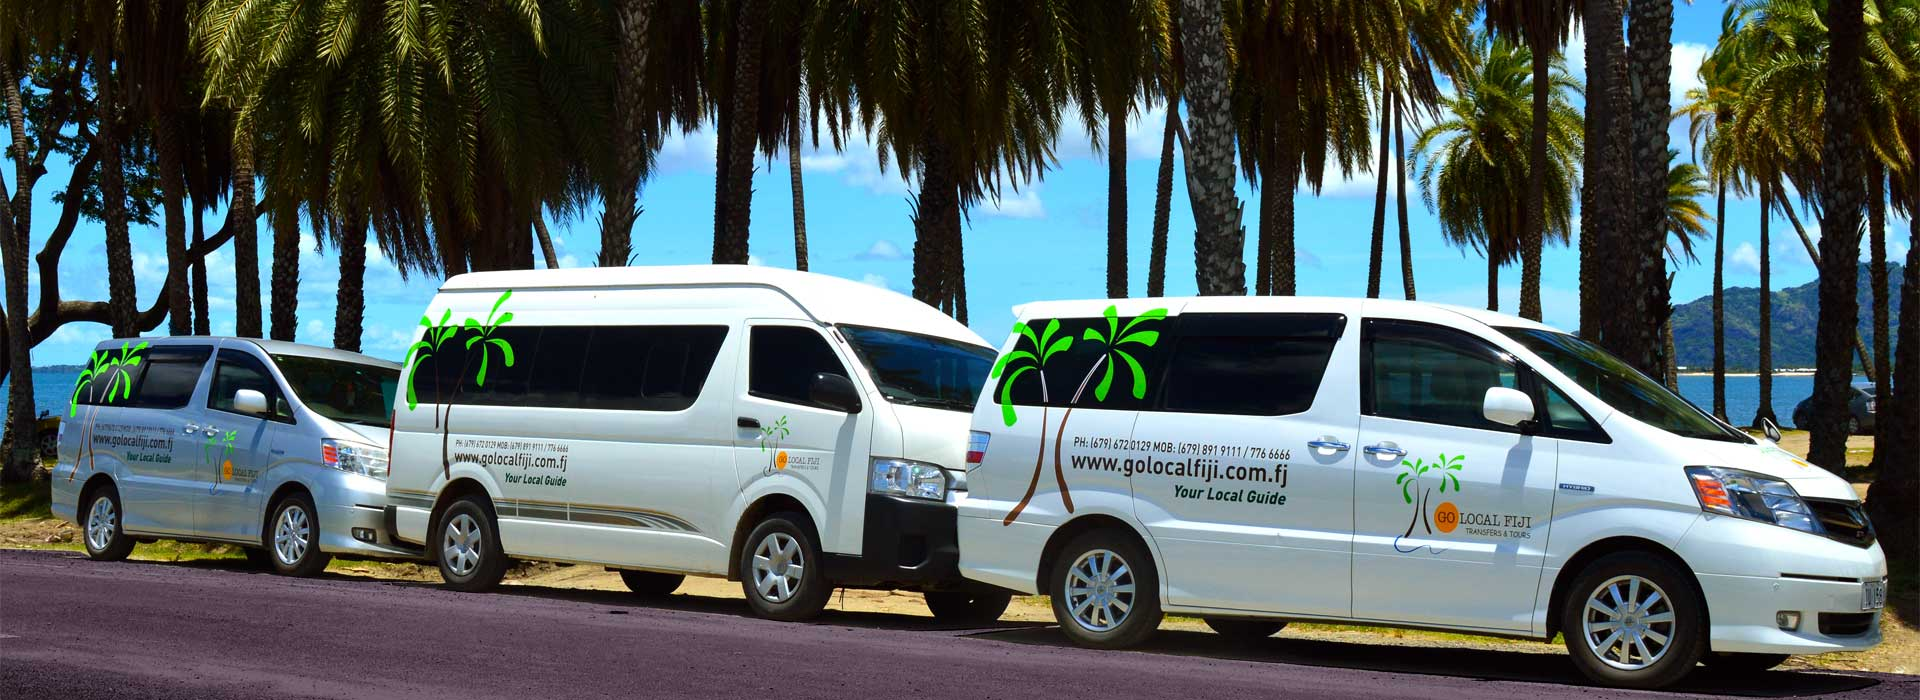 Our Fleet Go local Tours and Transfers